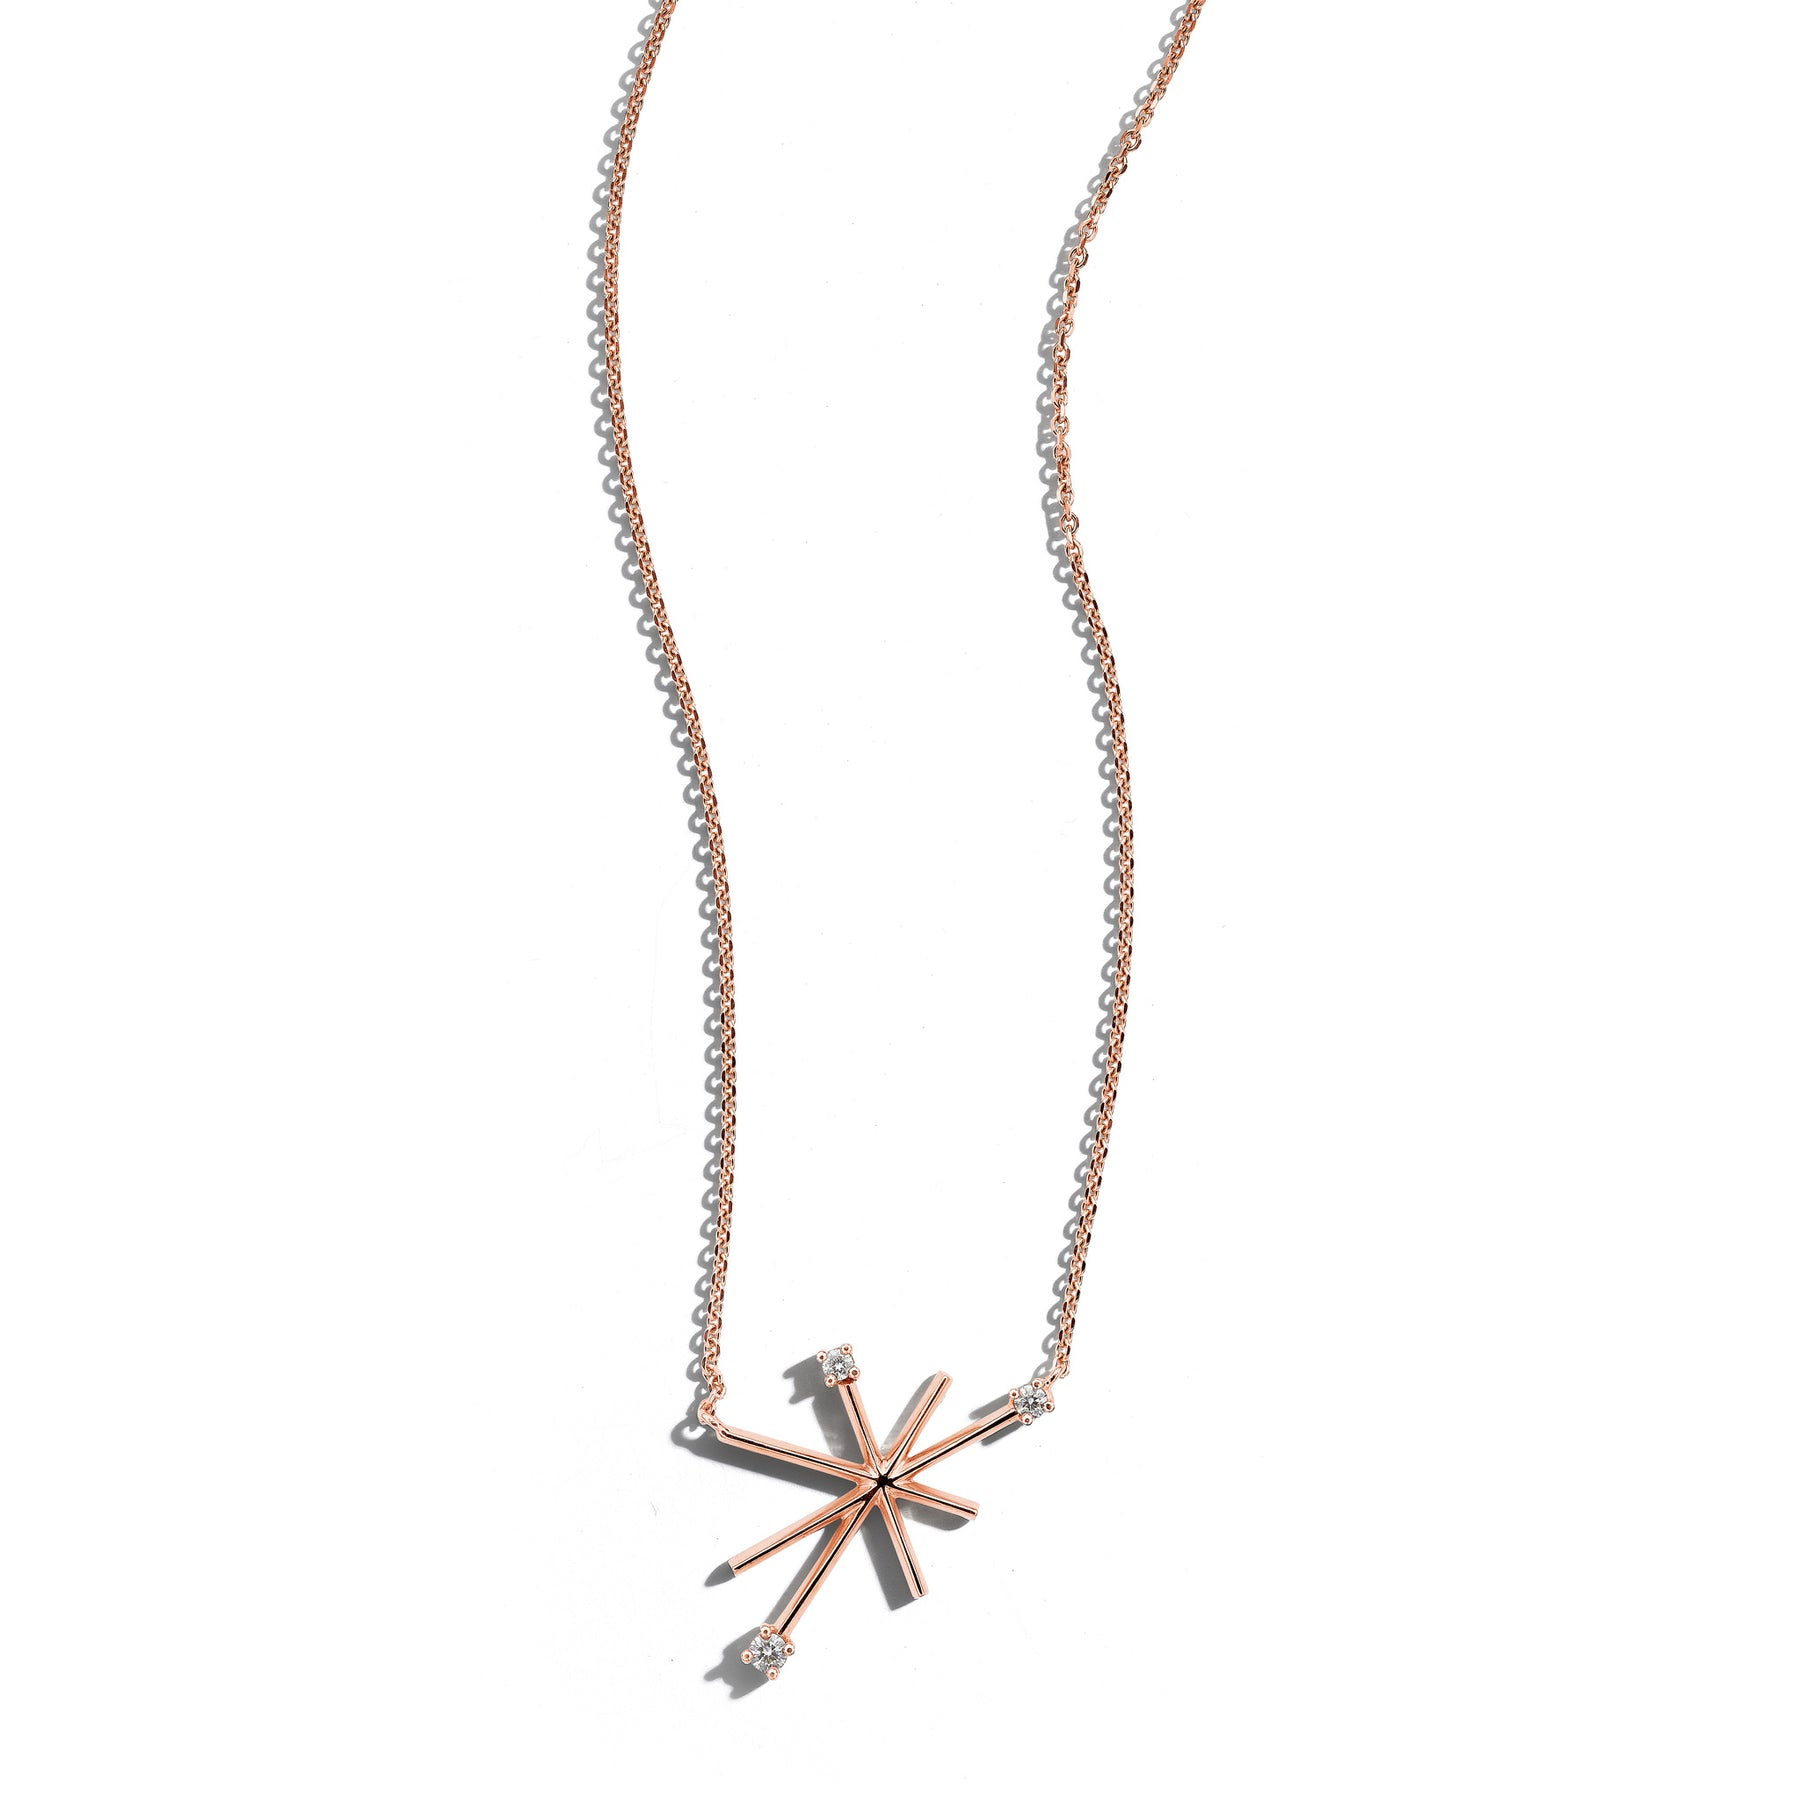 Mimi-So-Piece-Star-Necklace-Small_18k Rose Gold